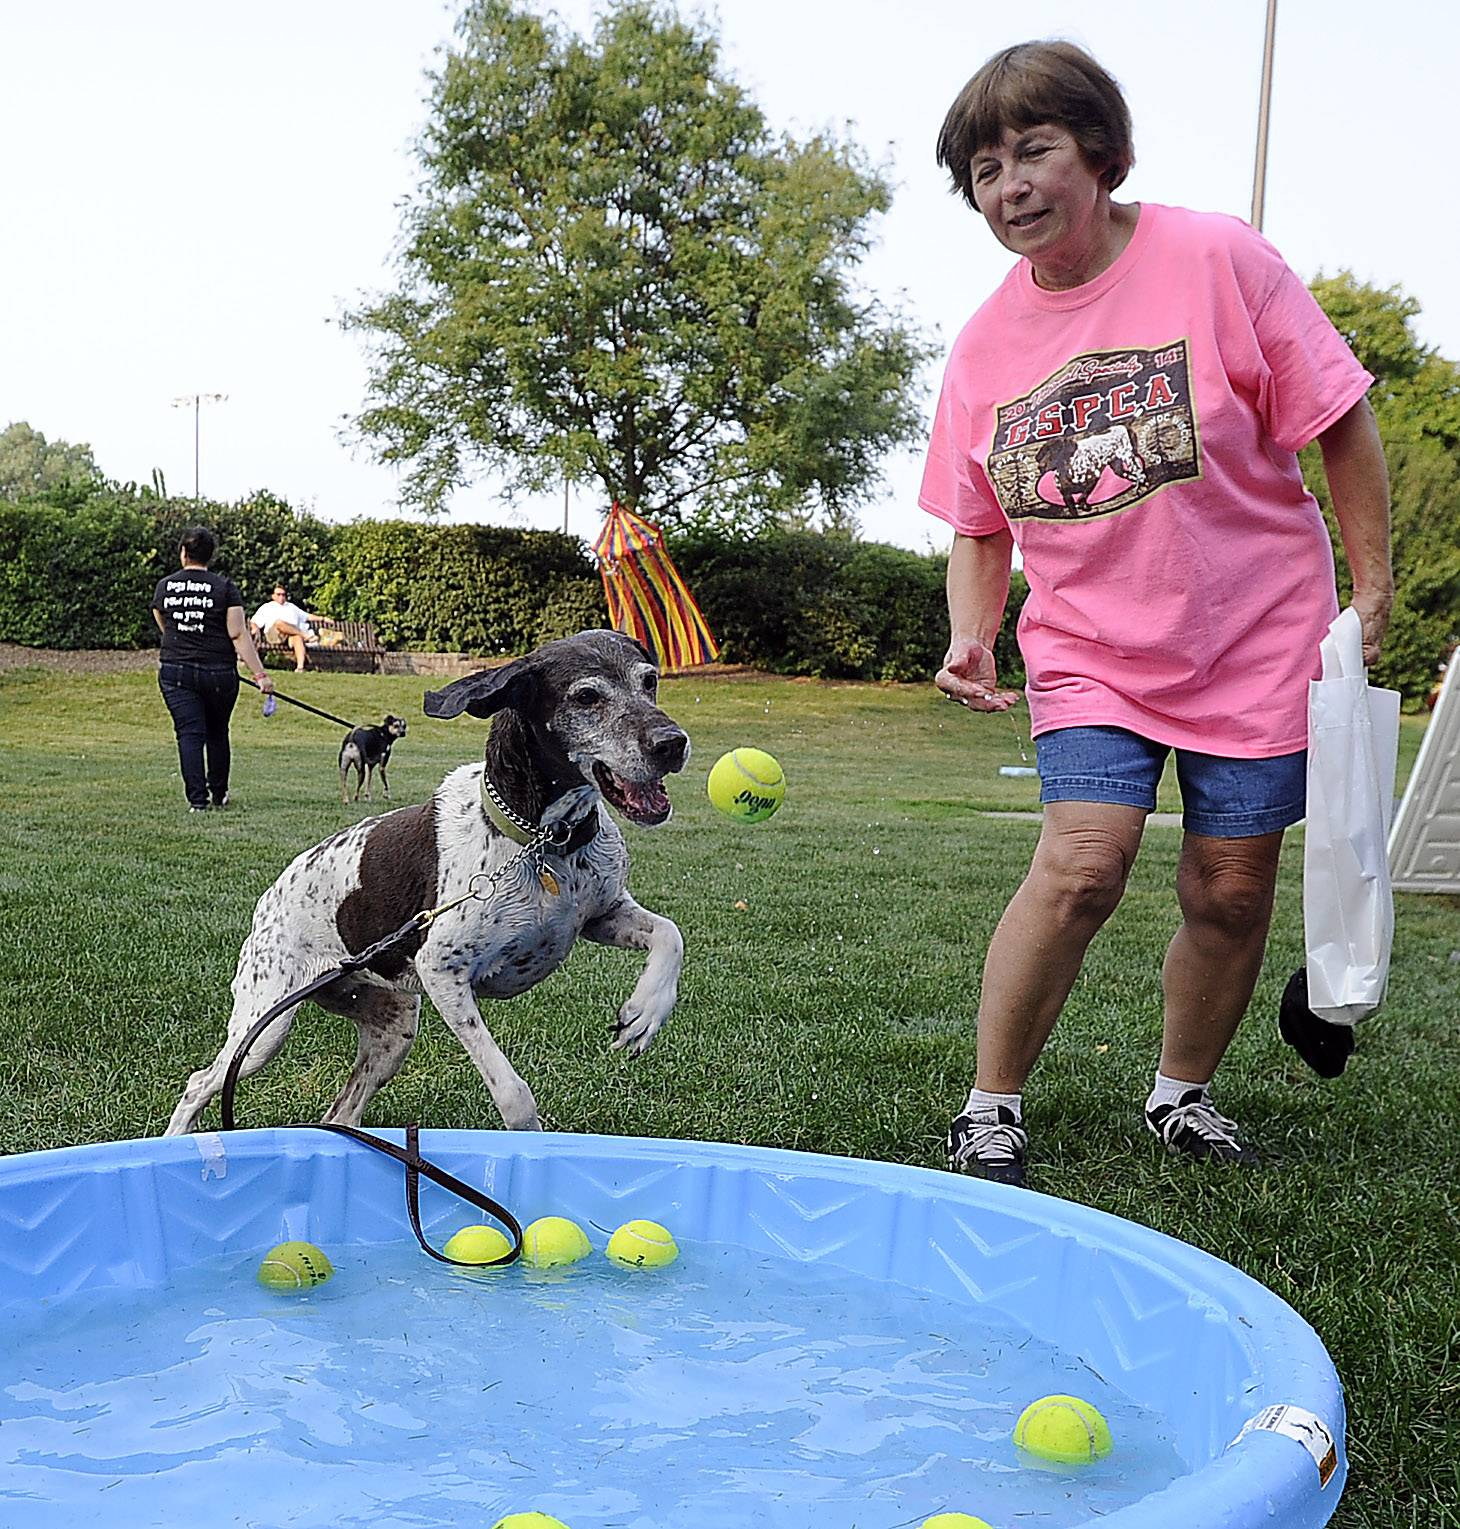 Mark Welsh/mwelsh@dailyherald.comPat Beckstrom and her German short hair pointer Daisy, also an excellent tennis player goes after a tennis ball at the dog carnival in Palatine on Thursday.